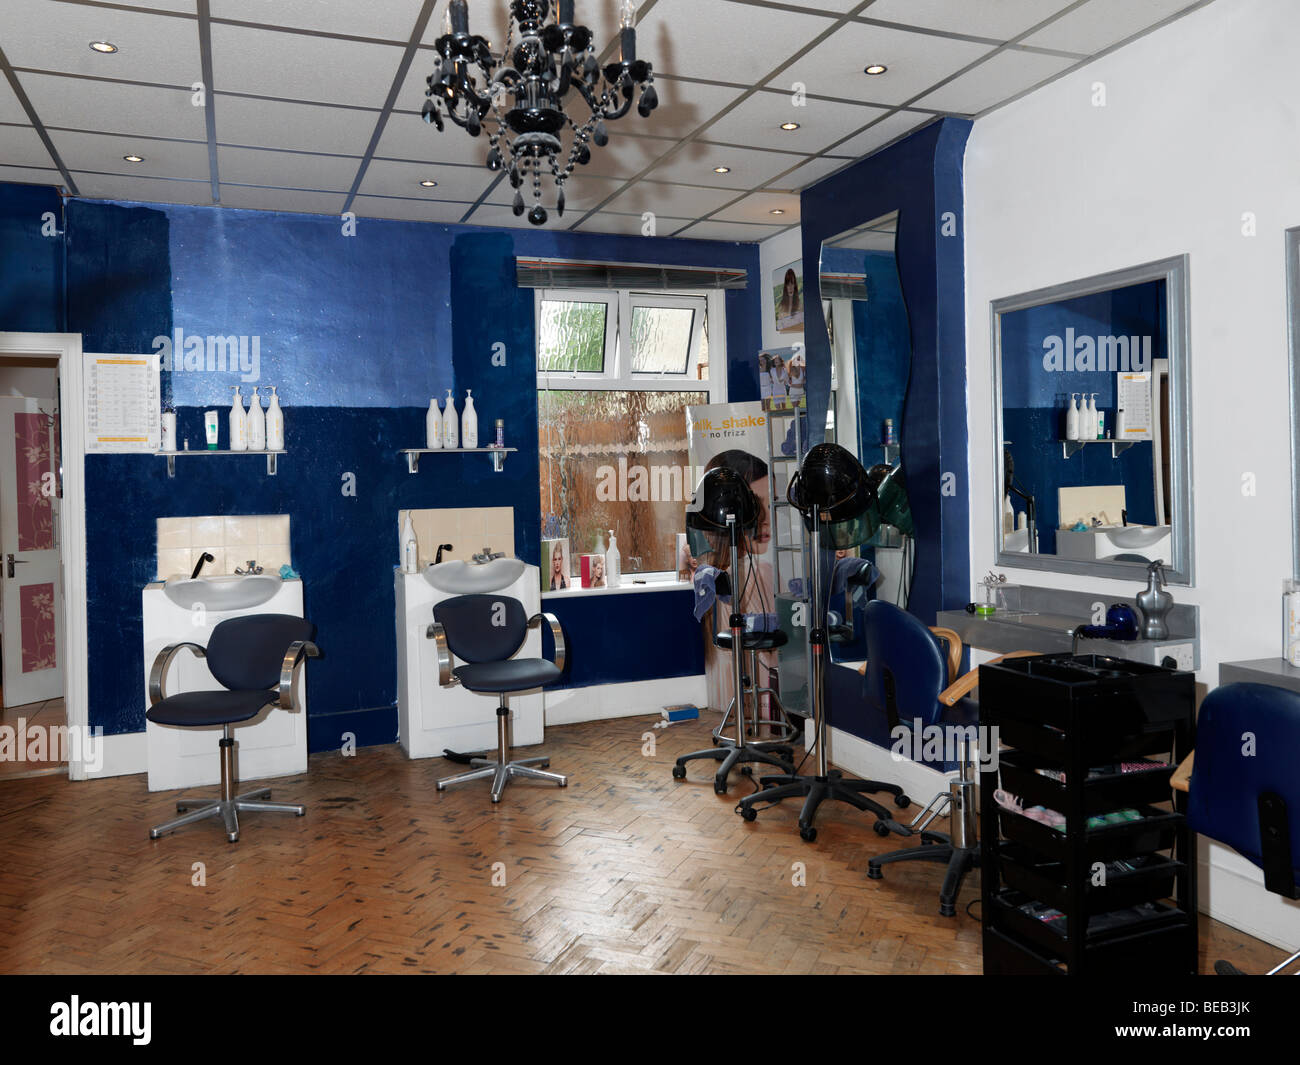 Hairdresser salon showing shampoo and conditioner bottles - Stock Image